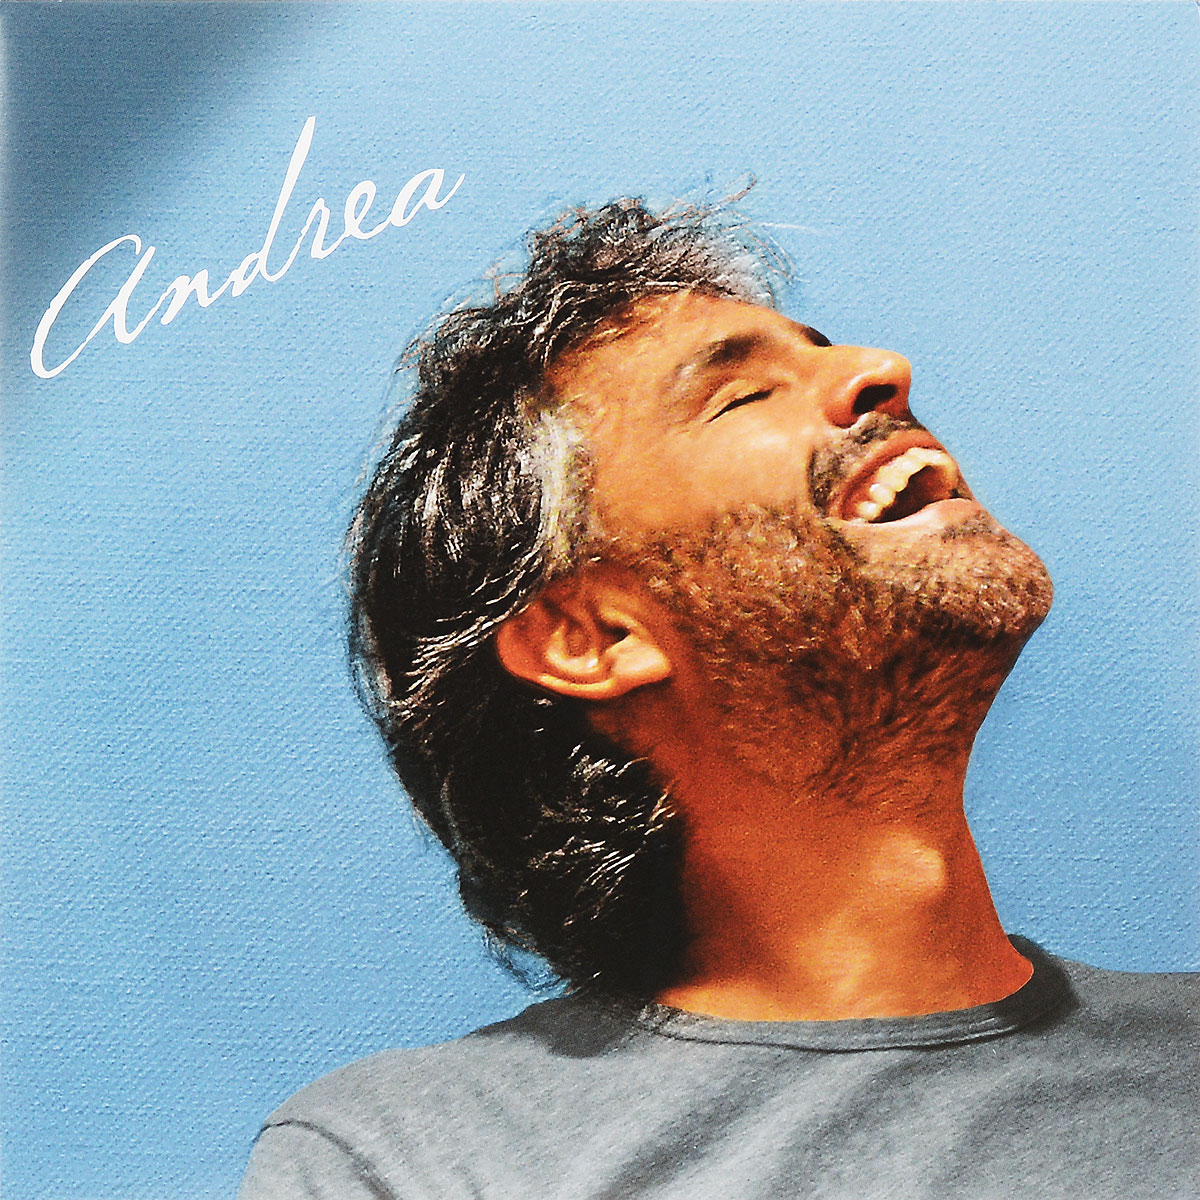 Андреа Бочелли Andrea Bocelli. Andrea (2 LP) андреа бочелли брин терфел марина домашенко дэльфин хэйдан тьерри феликс nouvel orchestre philharmonique de radio france мюнг вун чунг andrea bocelli bizet carmen 2 cd